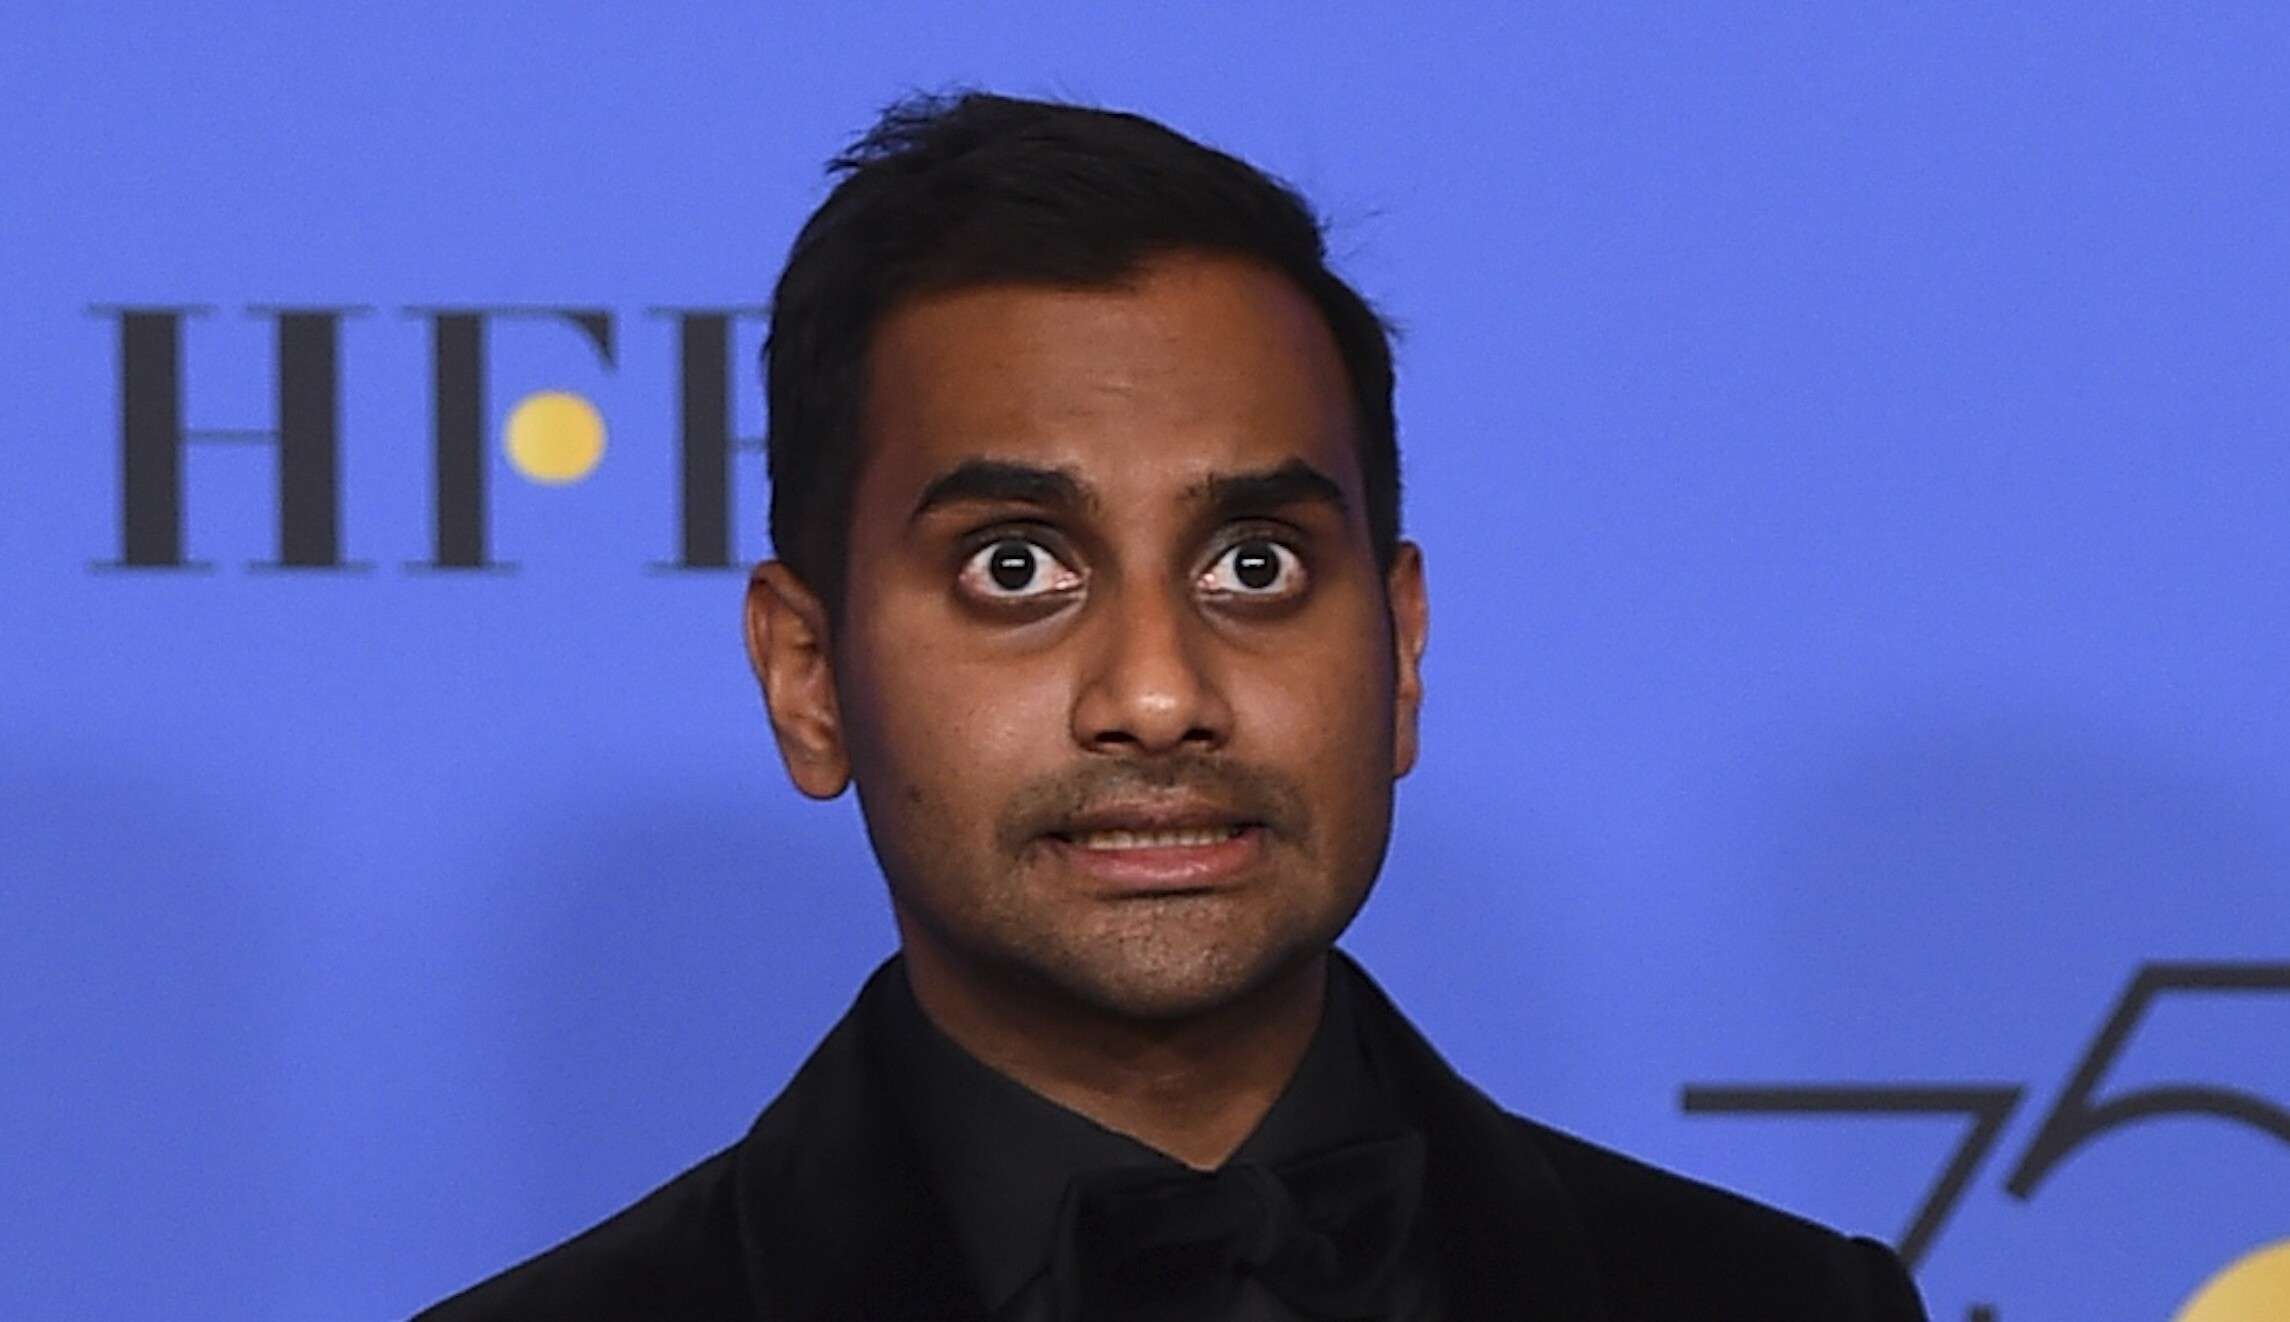 Feminists attacking aziz ansari are killing the metoo movement stopboris Gallery